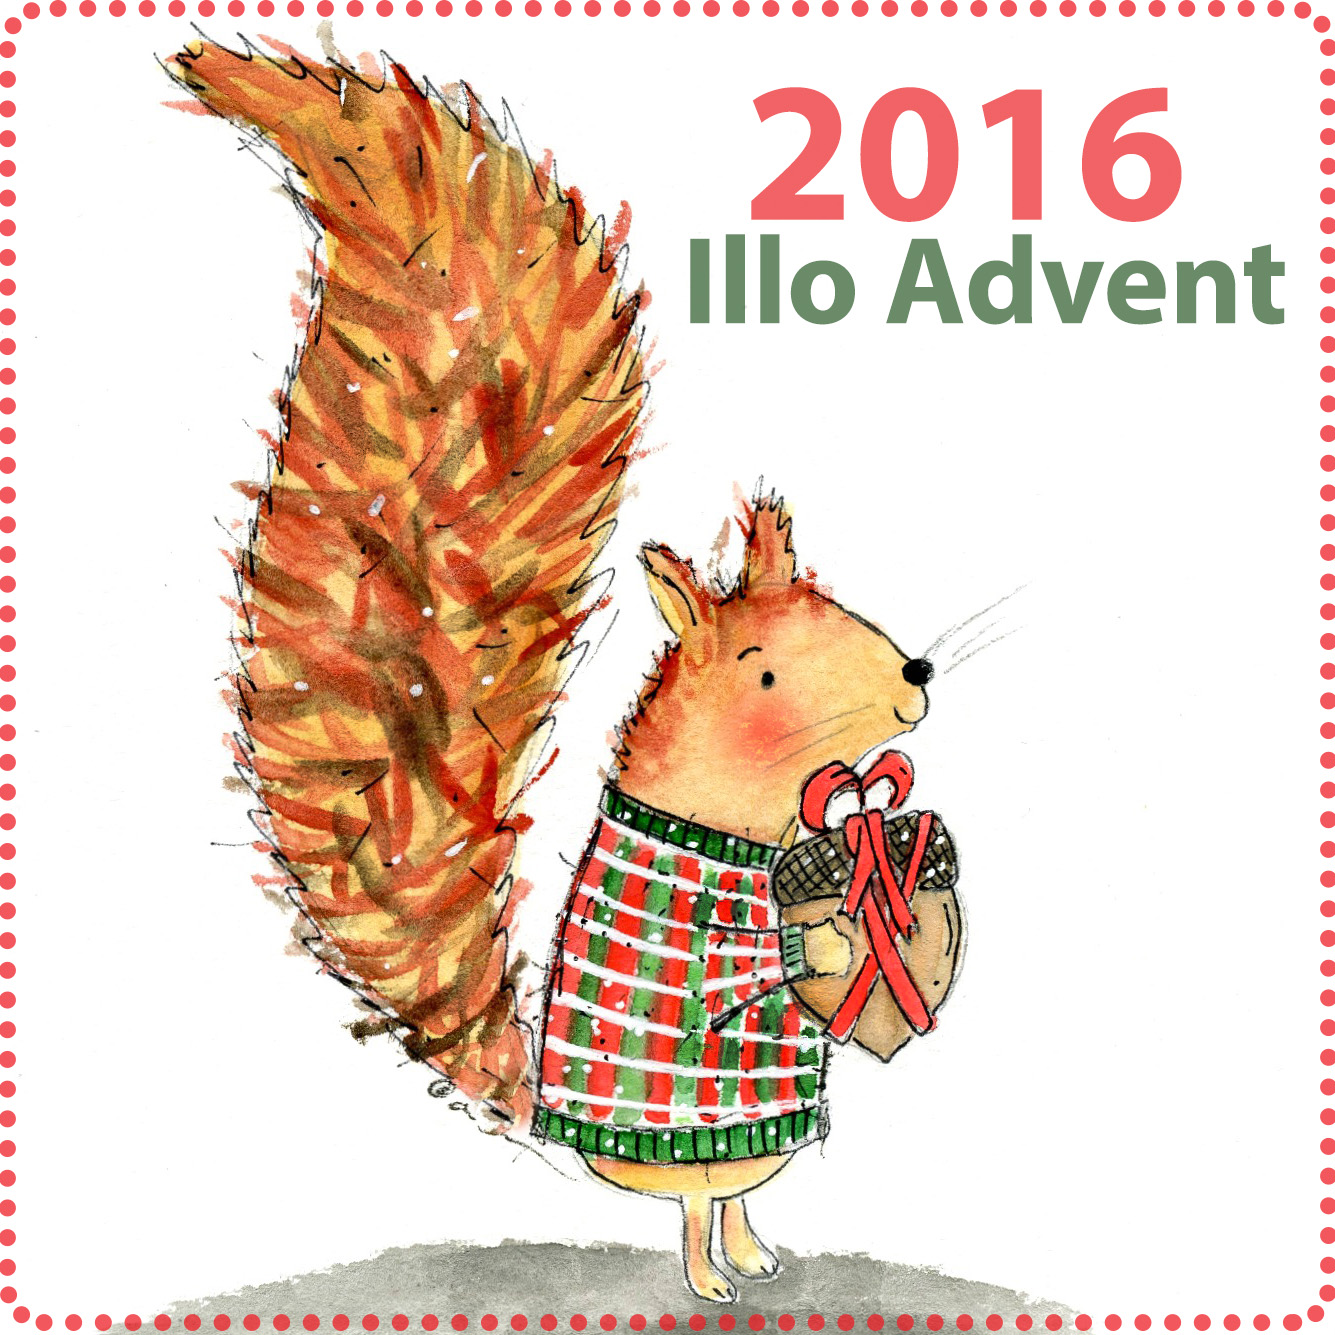 My 2016 Christmas Illo Advent